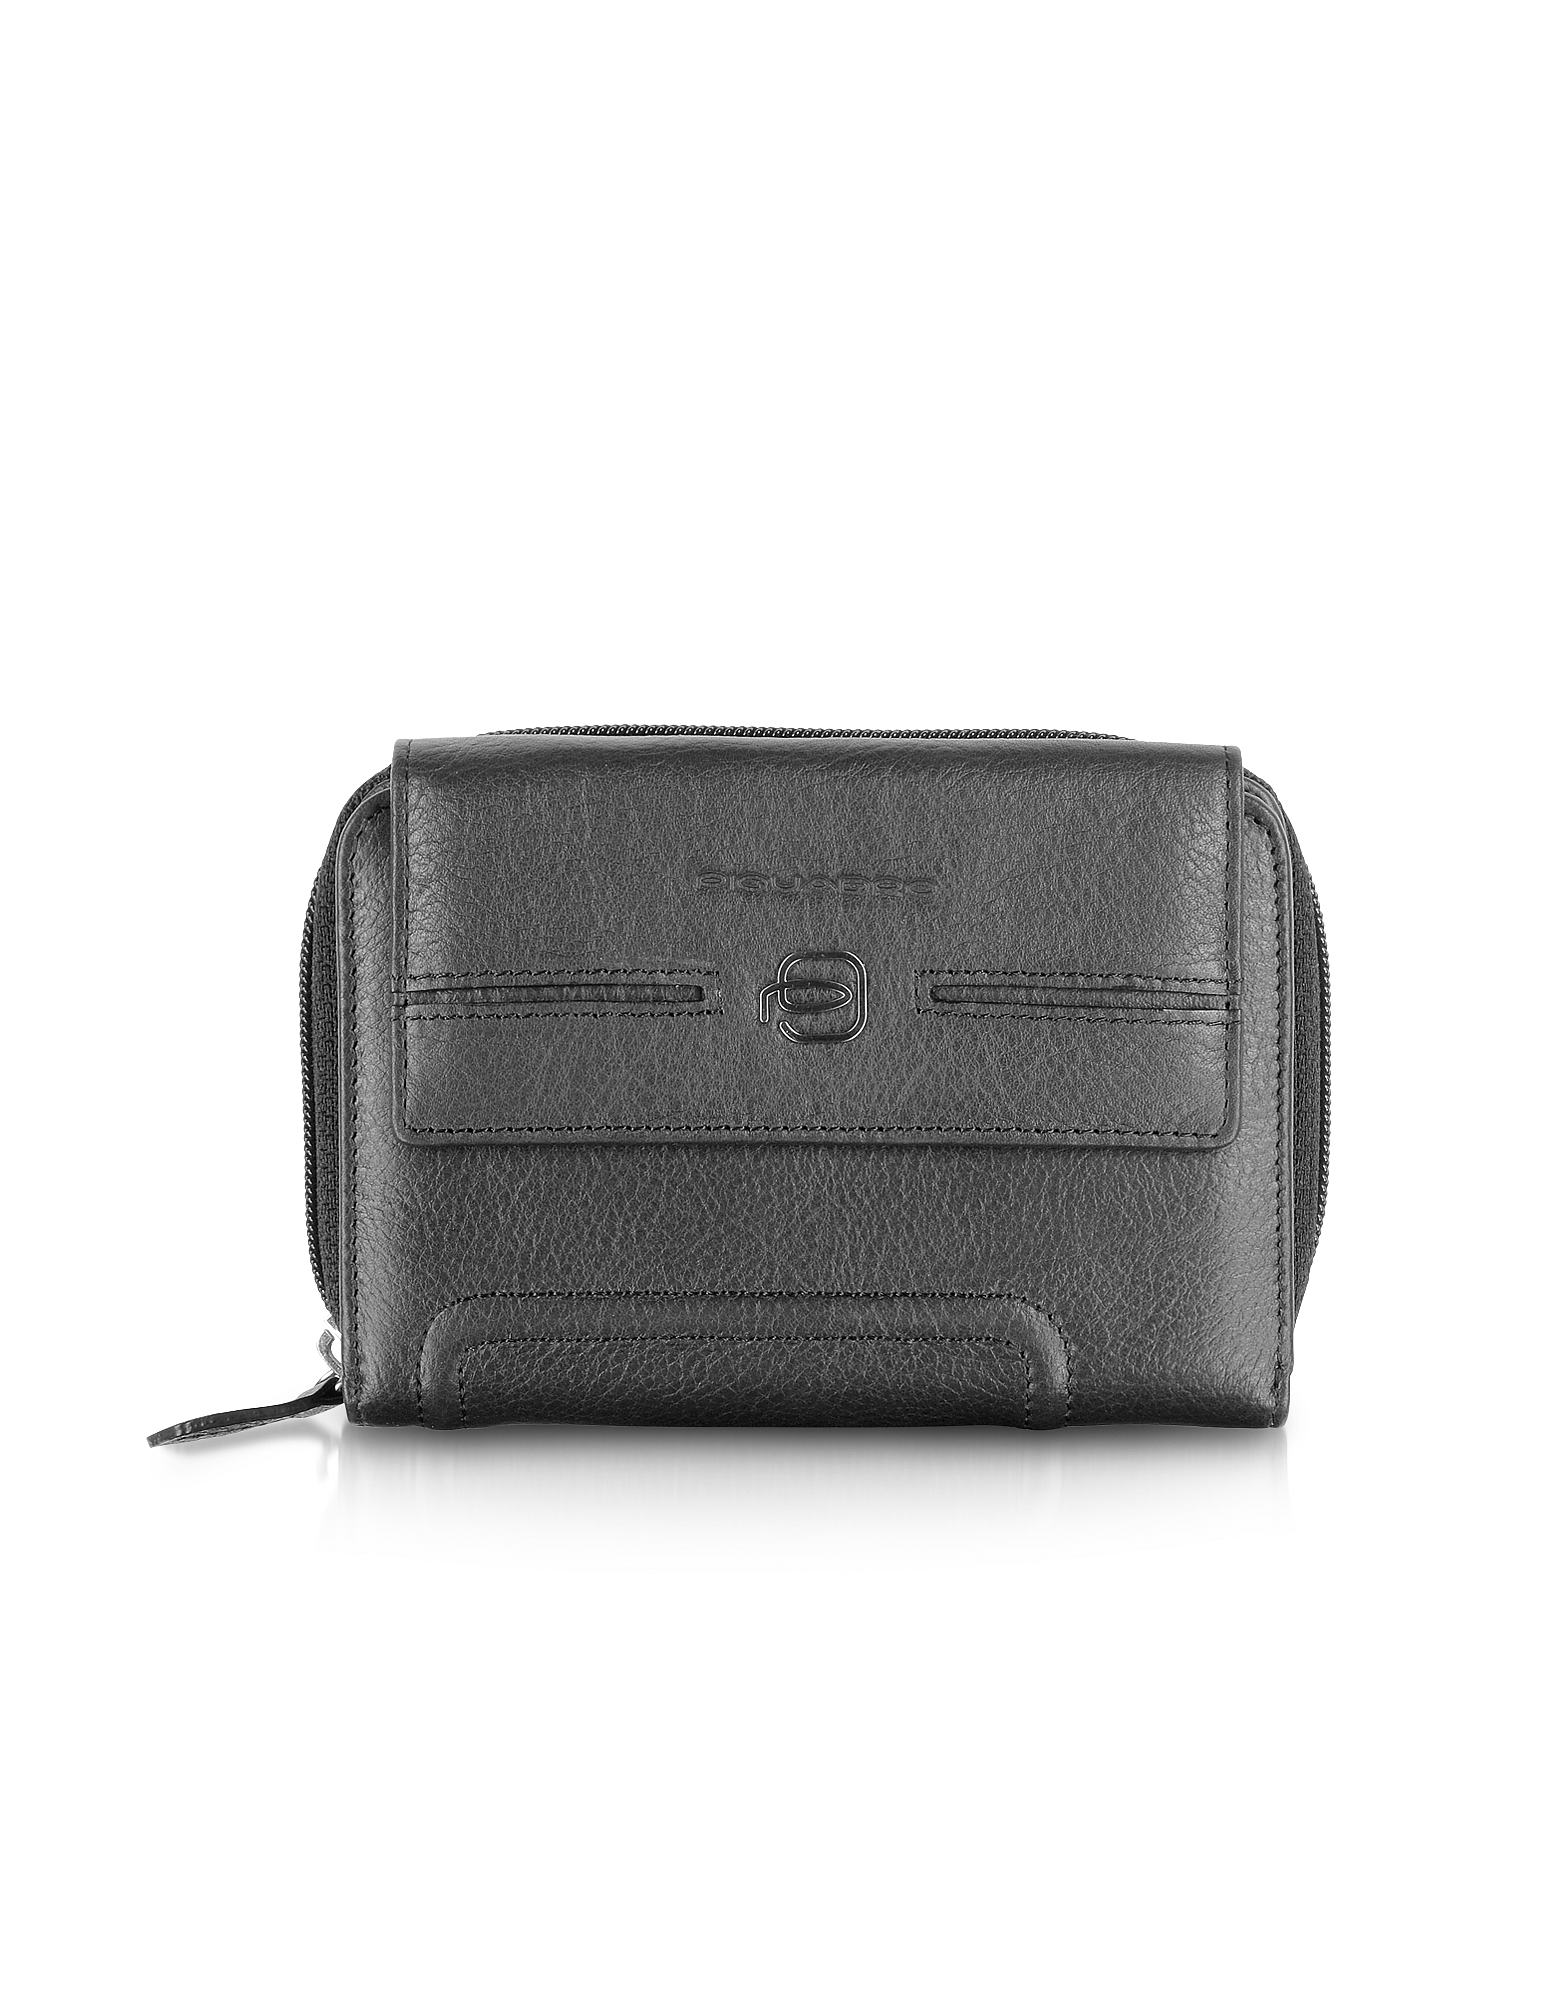 Vibe - Leather Flap Wallet